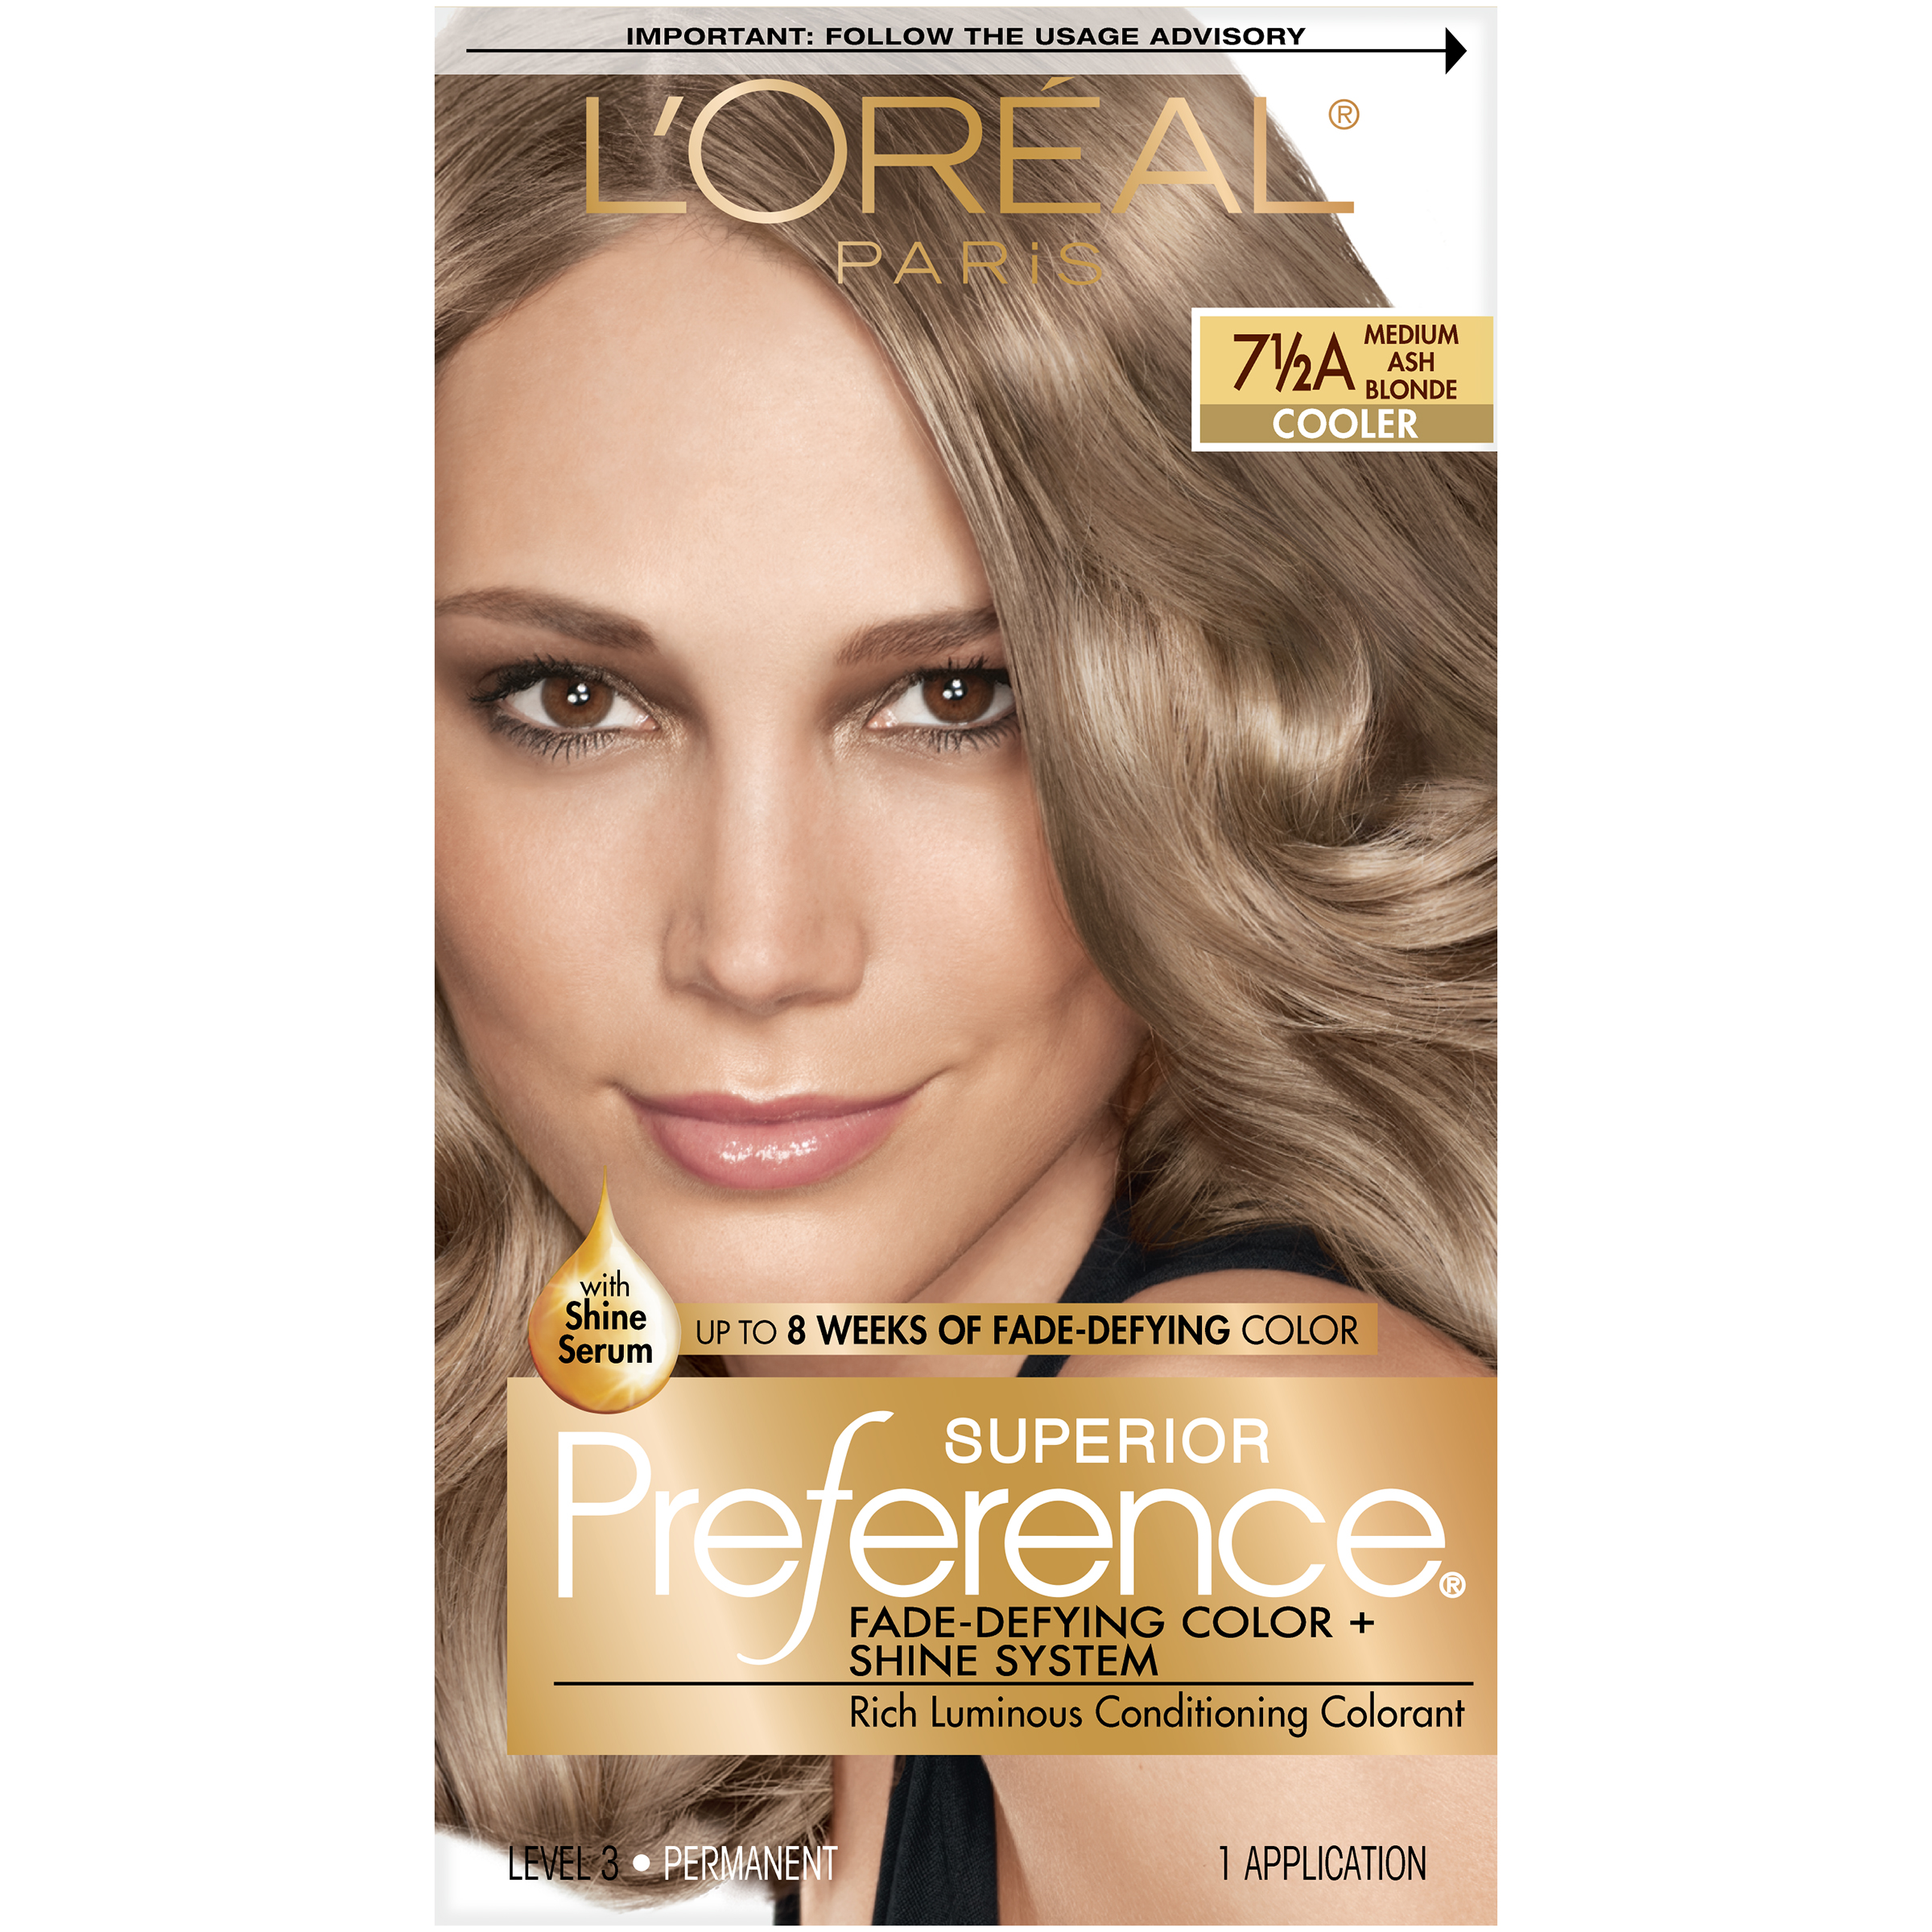 Loreal Paris Superior Preference 7 12a Medium Ash Blonde Cooler